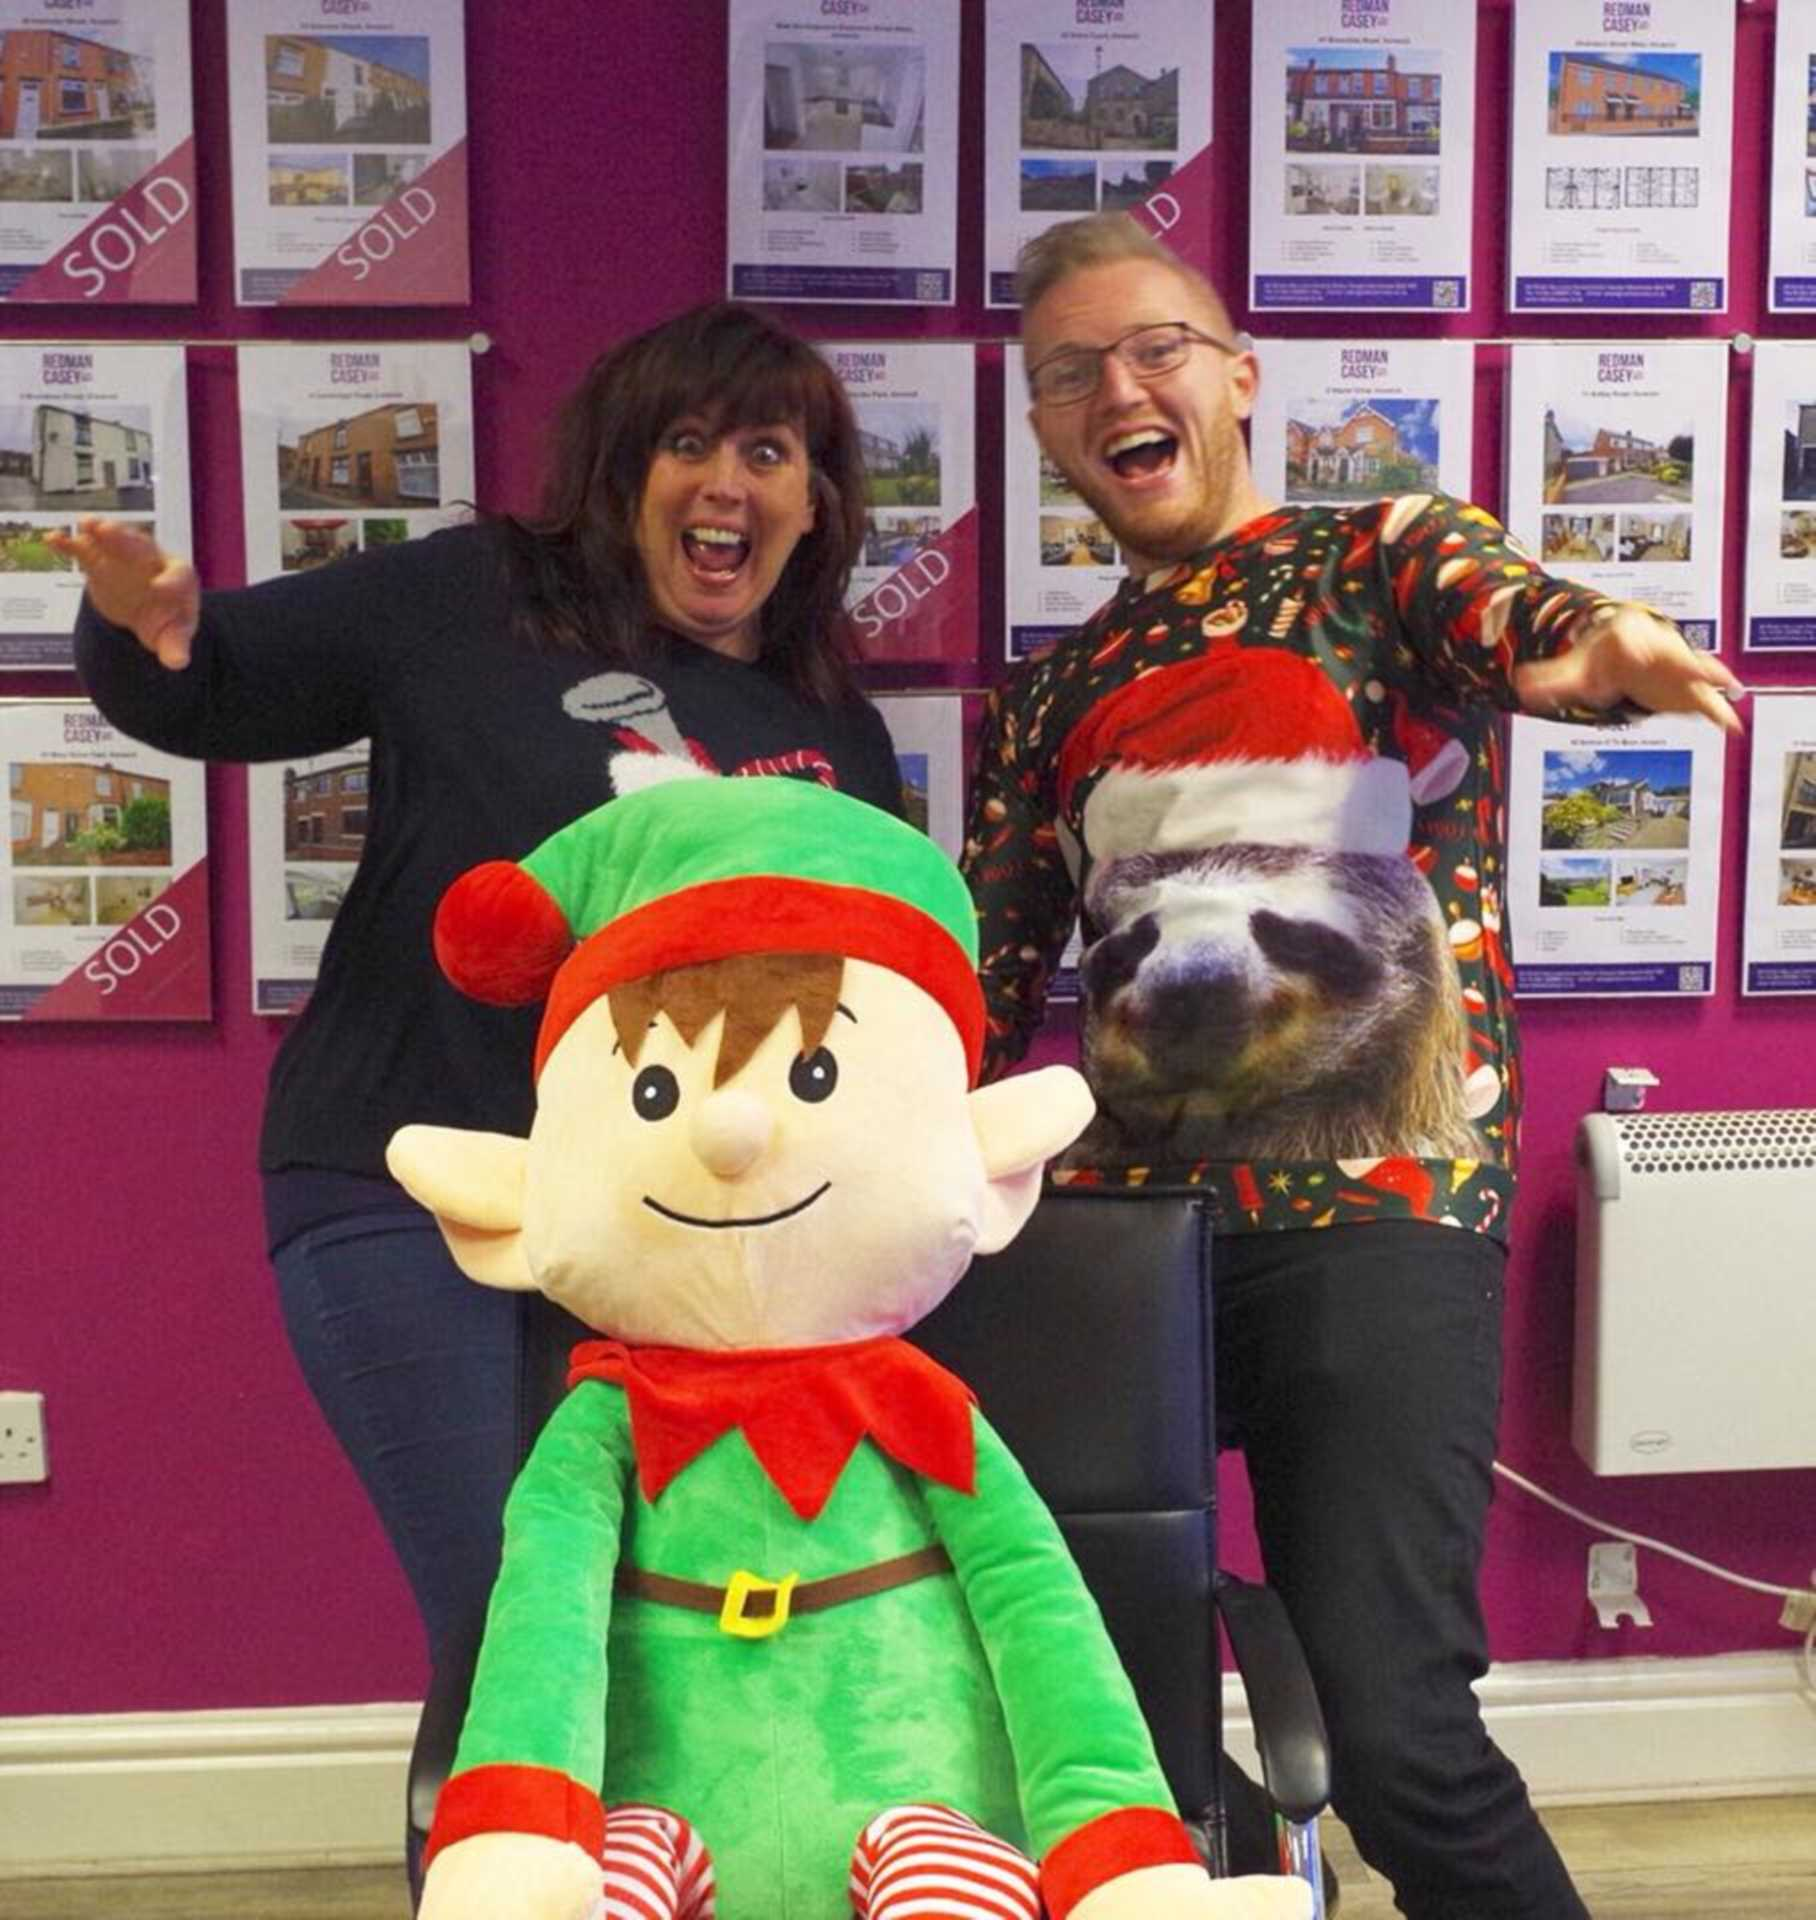 More fun with our elf whilst raising money for Bolton Hospice